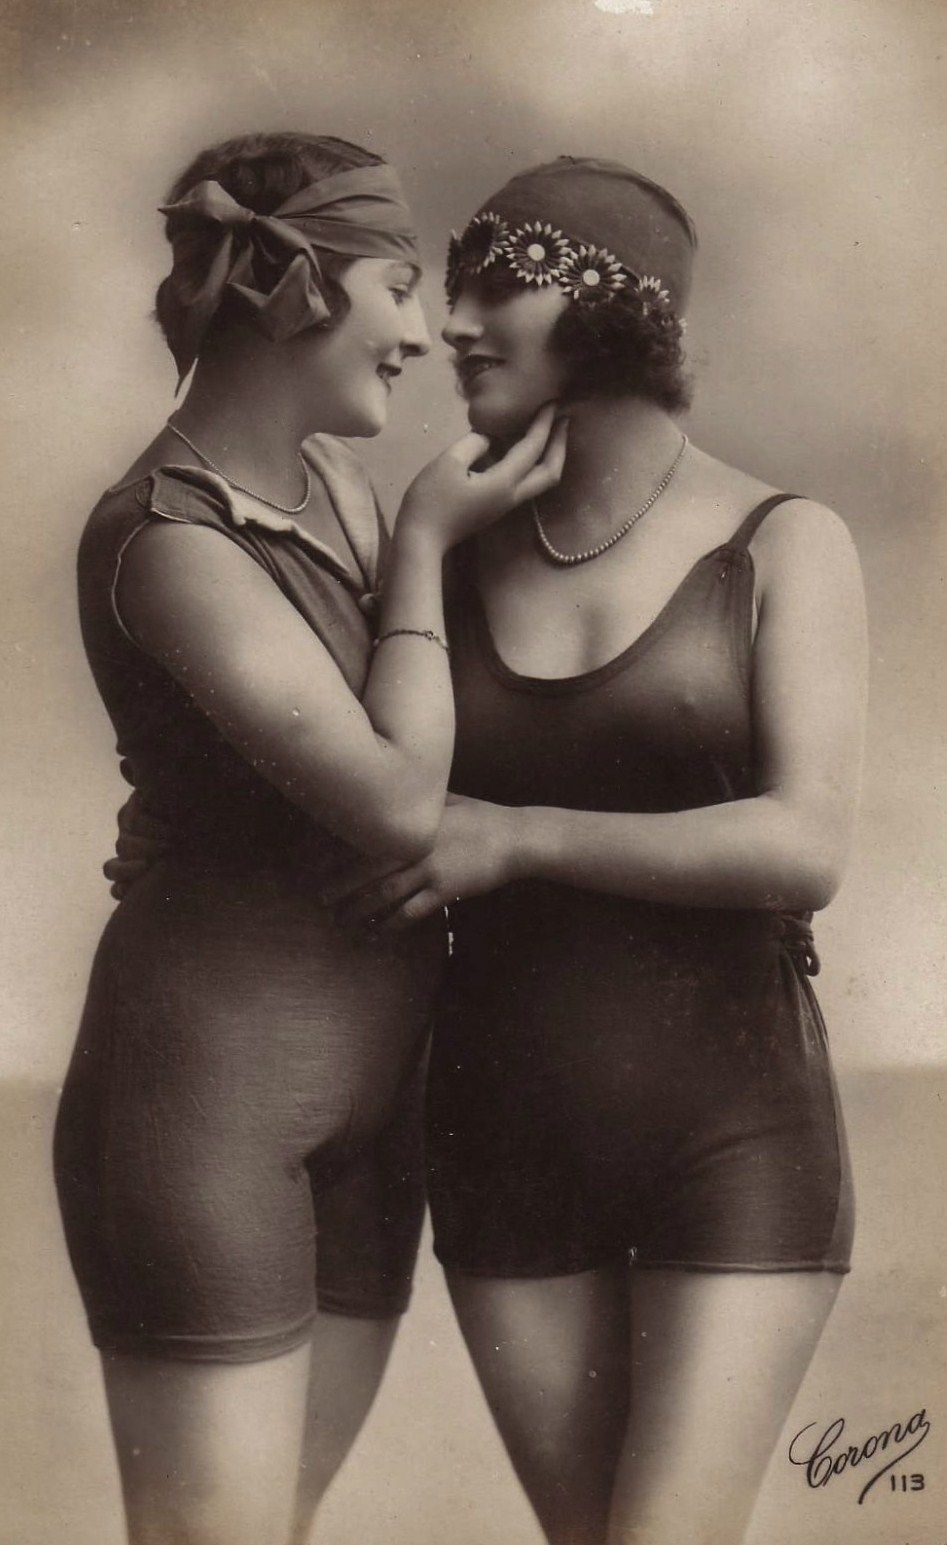 you and me in the olden days...lol